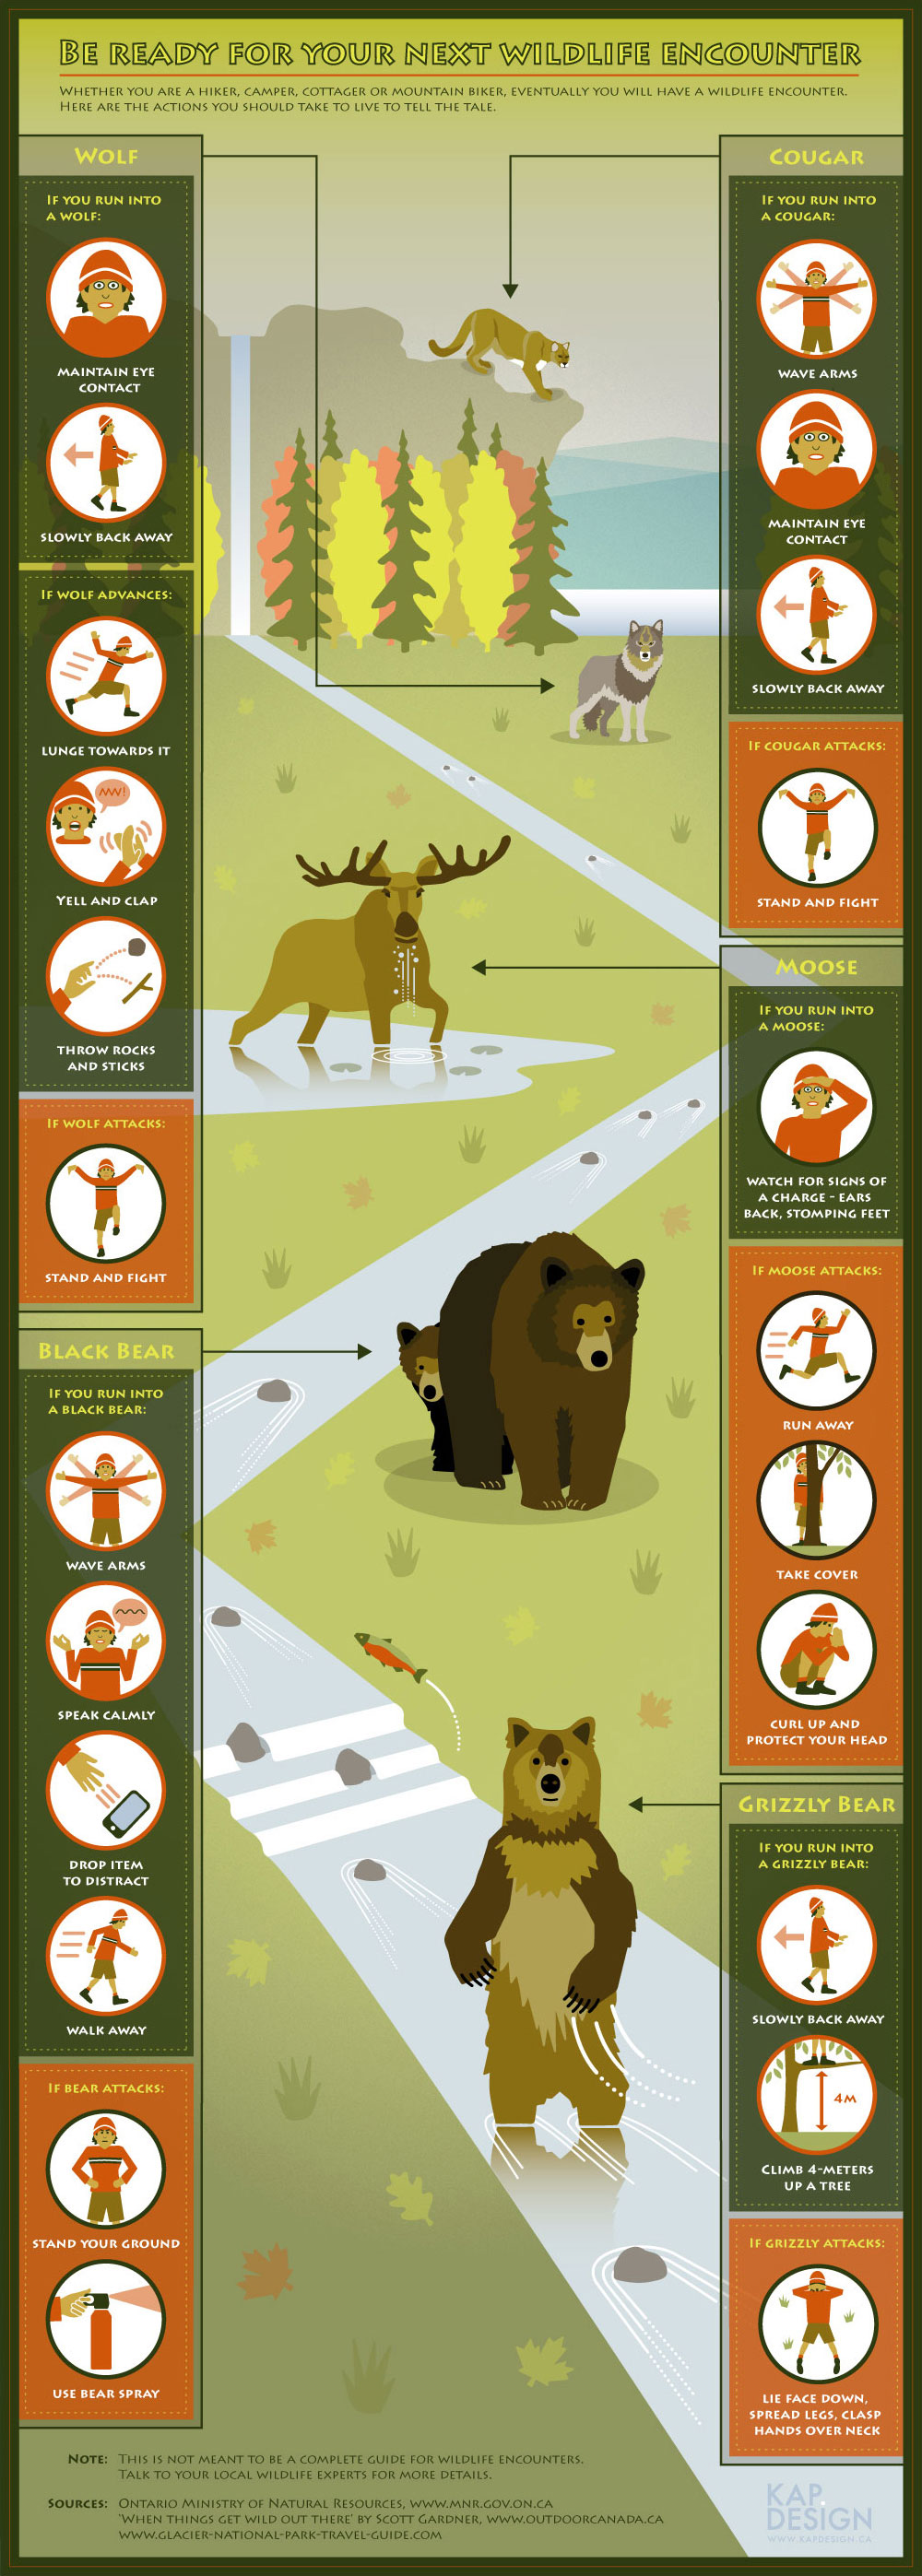 wildlife encounters tactics infographic